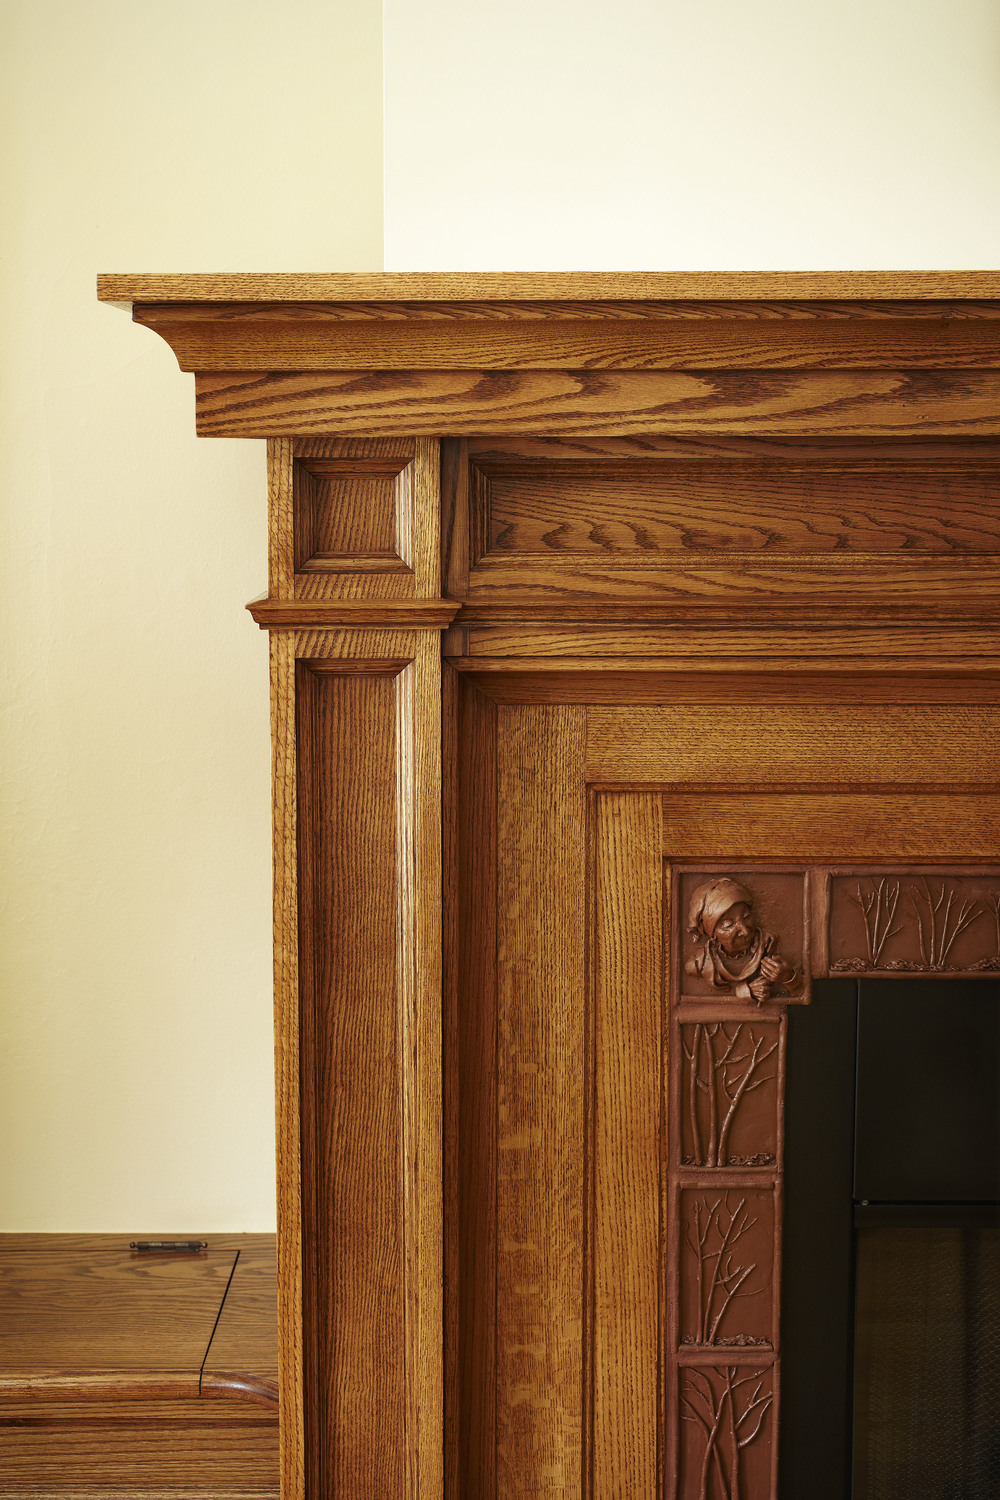 FIREPLACE_DETAIL_2.jpg